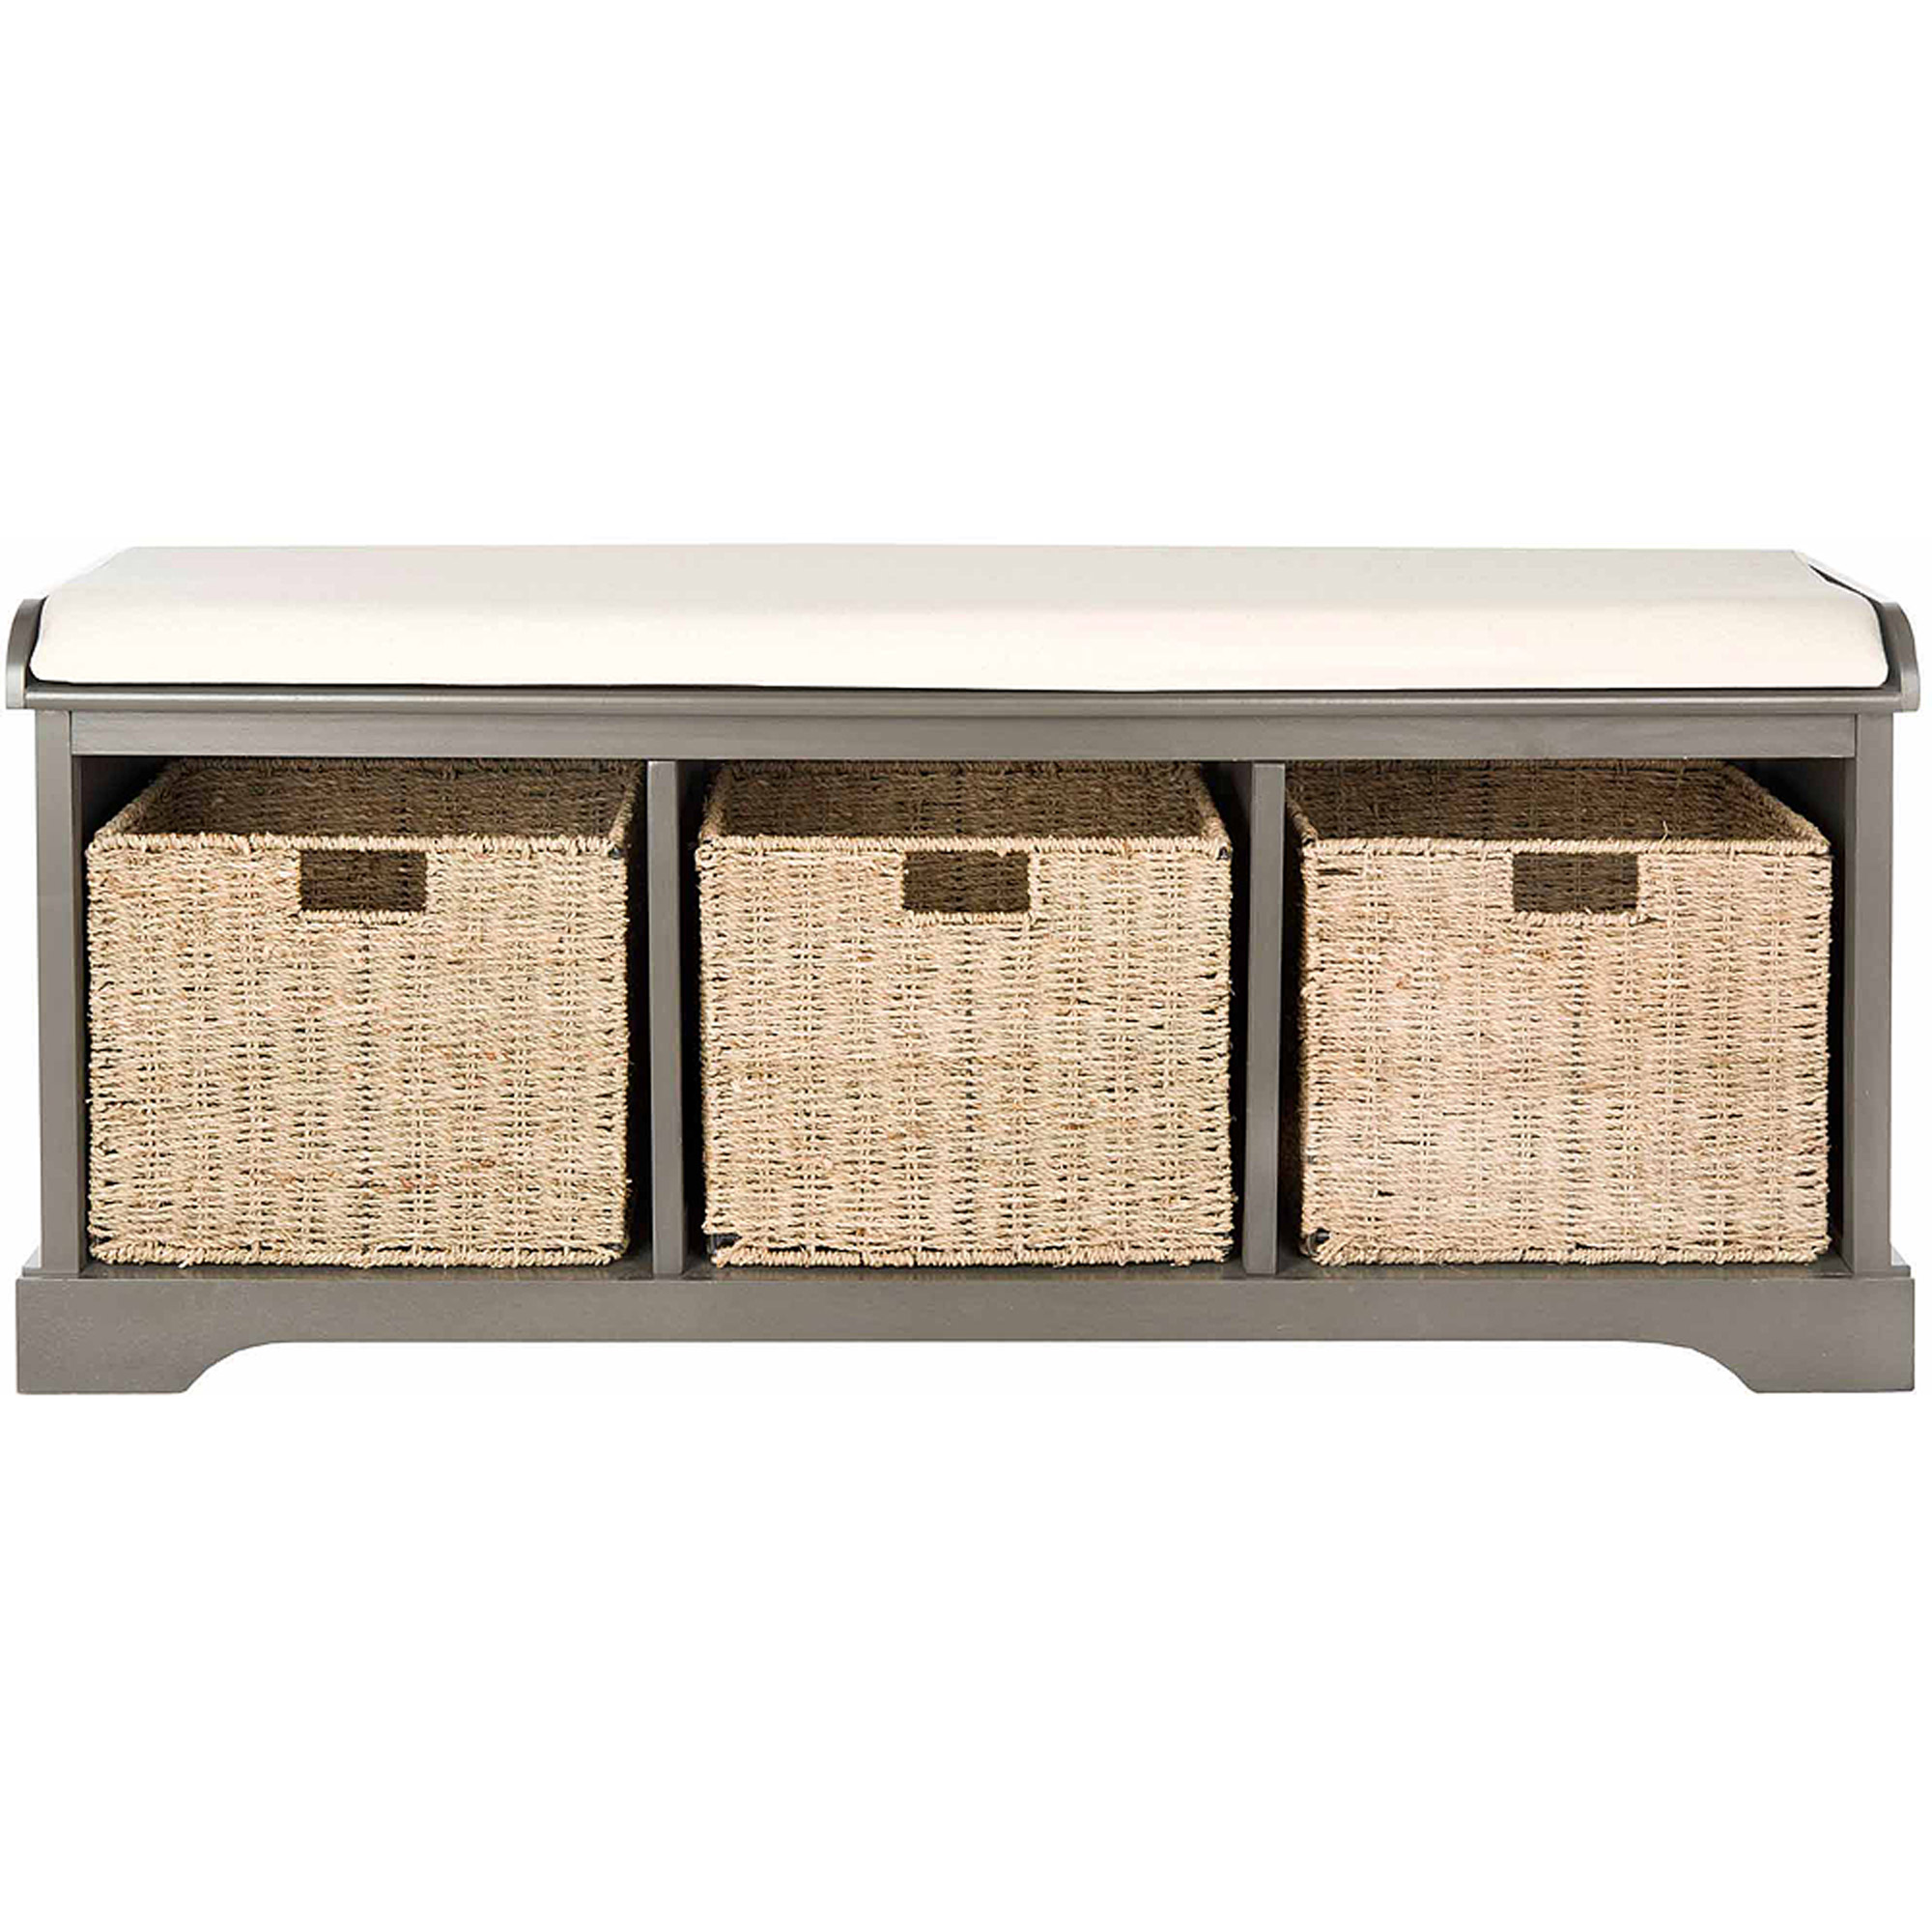 Safavieh Lonan Storage Bench, Multiple Colors